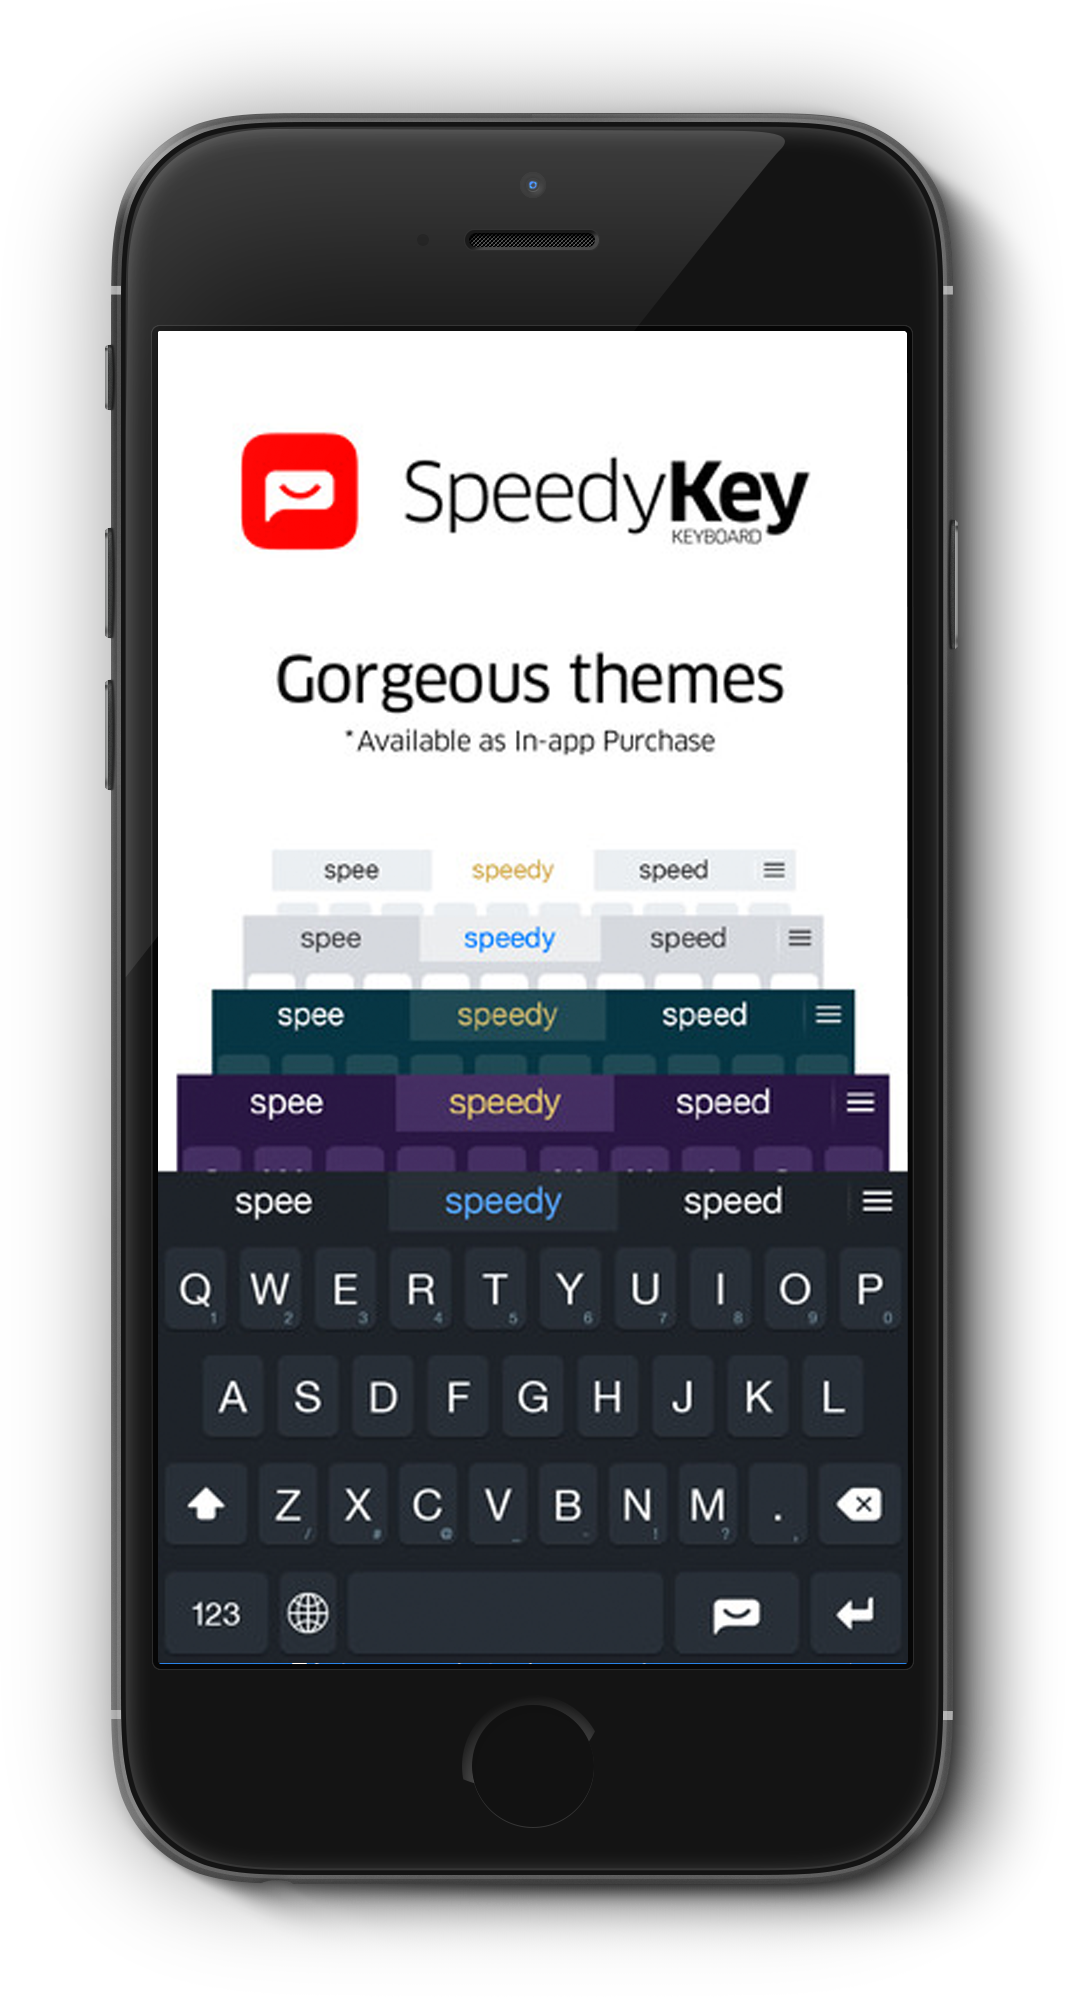 SpeedyKey offers four extra themes via in-app purchase